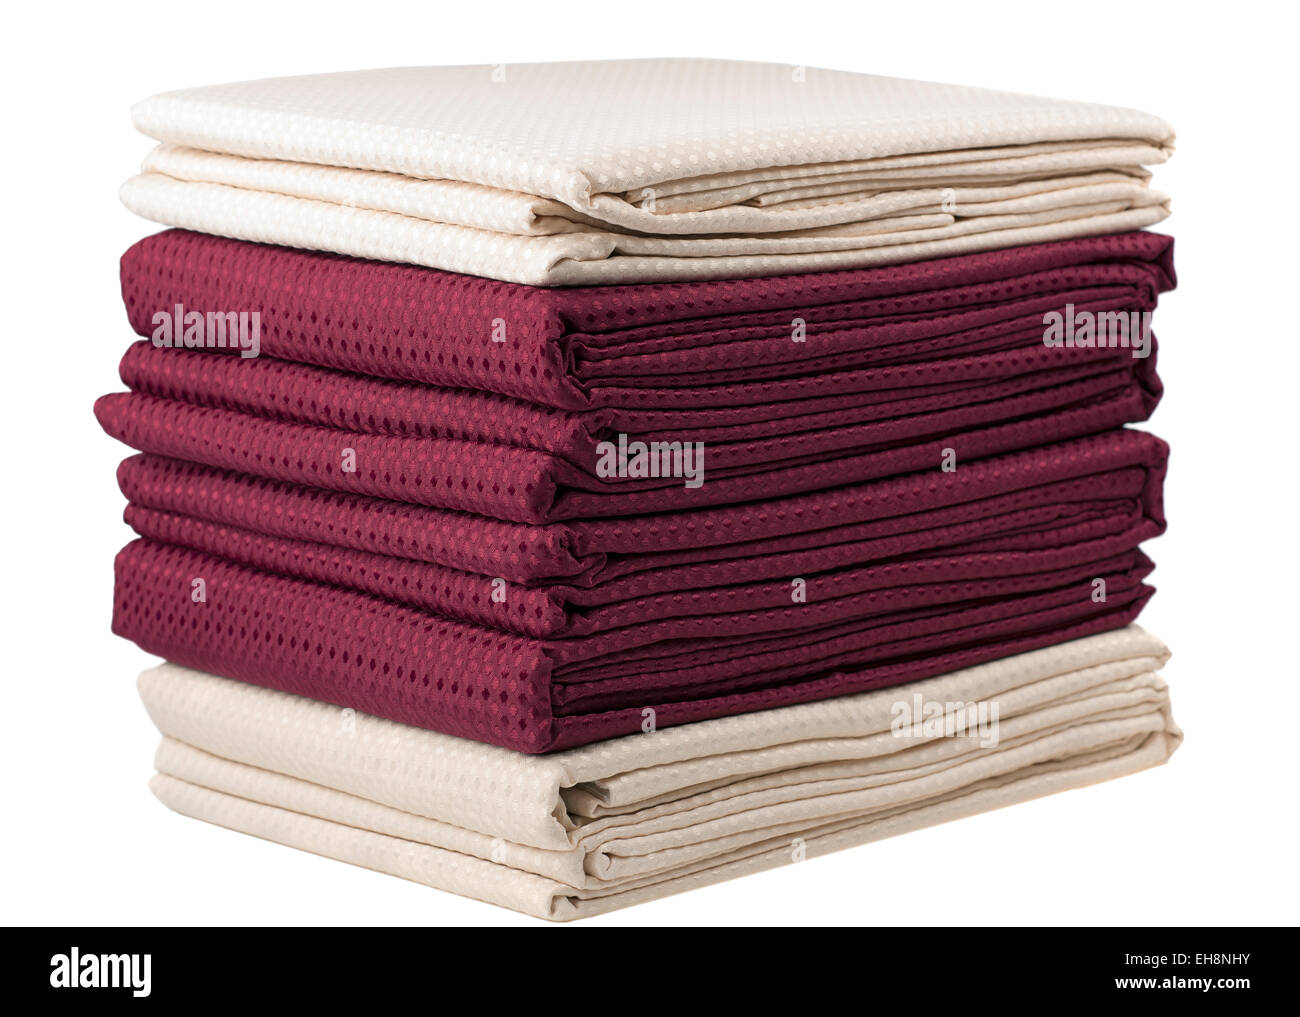 Pile of dark red and cream folded lined curtains - Stock Image